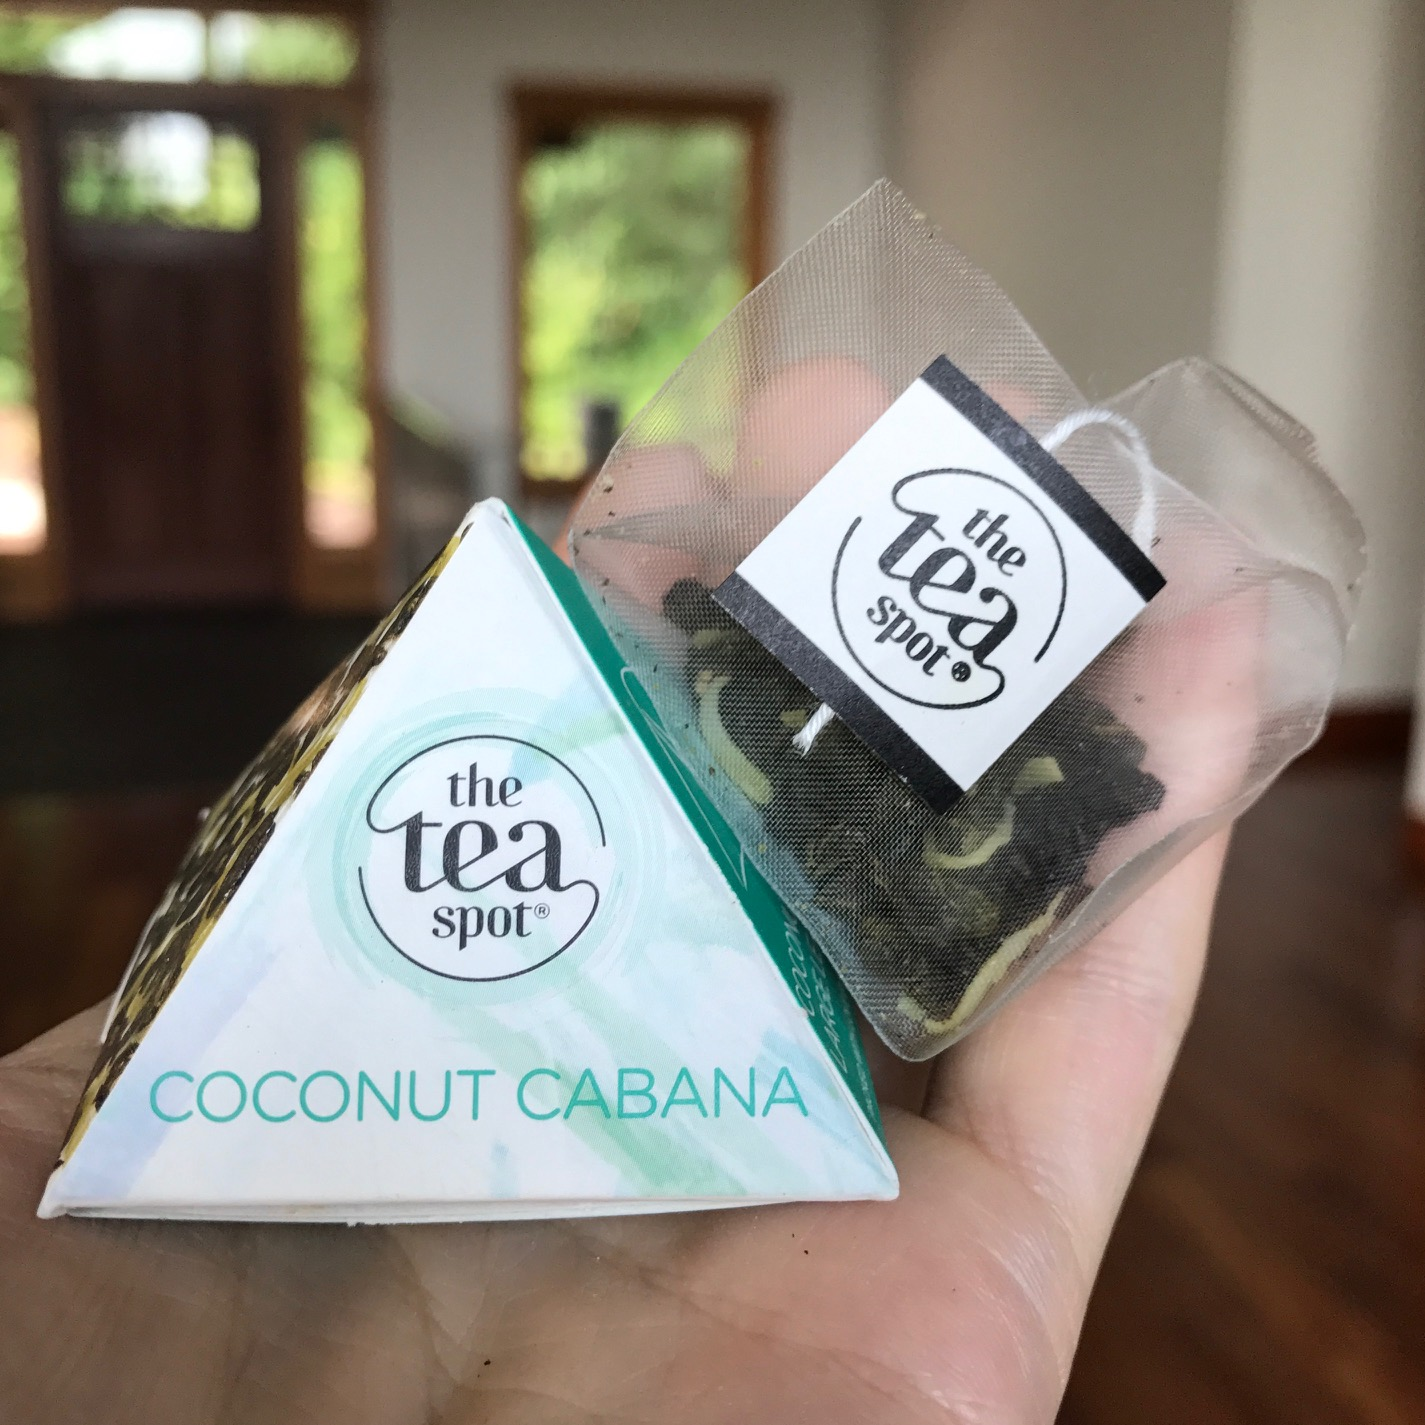 The Tea Spot Coconut Cabana Tea